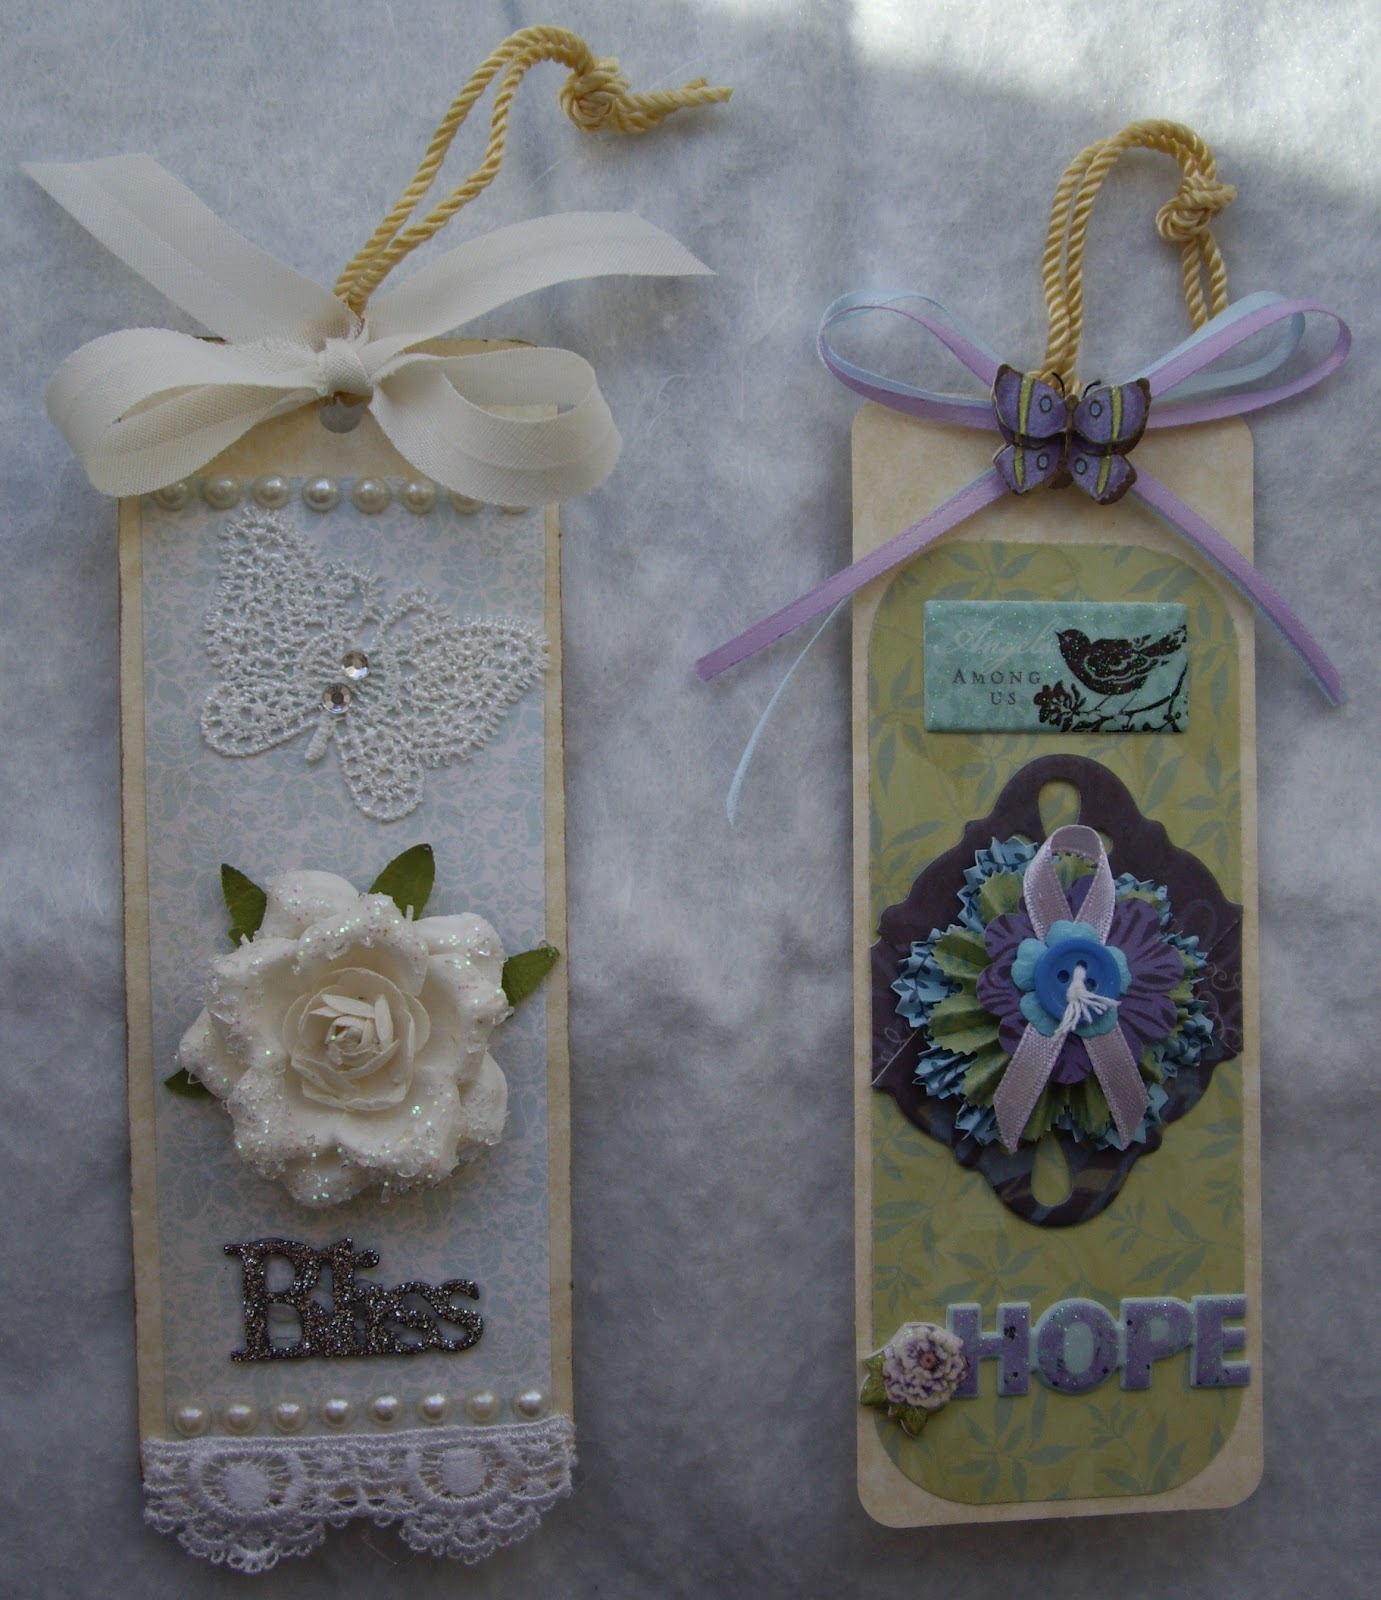 Creating with paper and bows april 2012 i also made some bookmarks to give as little easter gifts here is a peek at two of them ill share the rest of them and the details later in the week negle Images